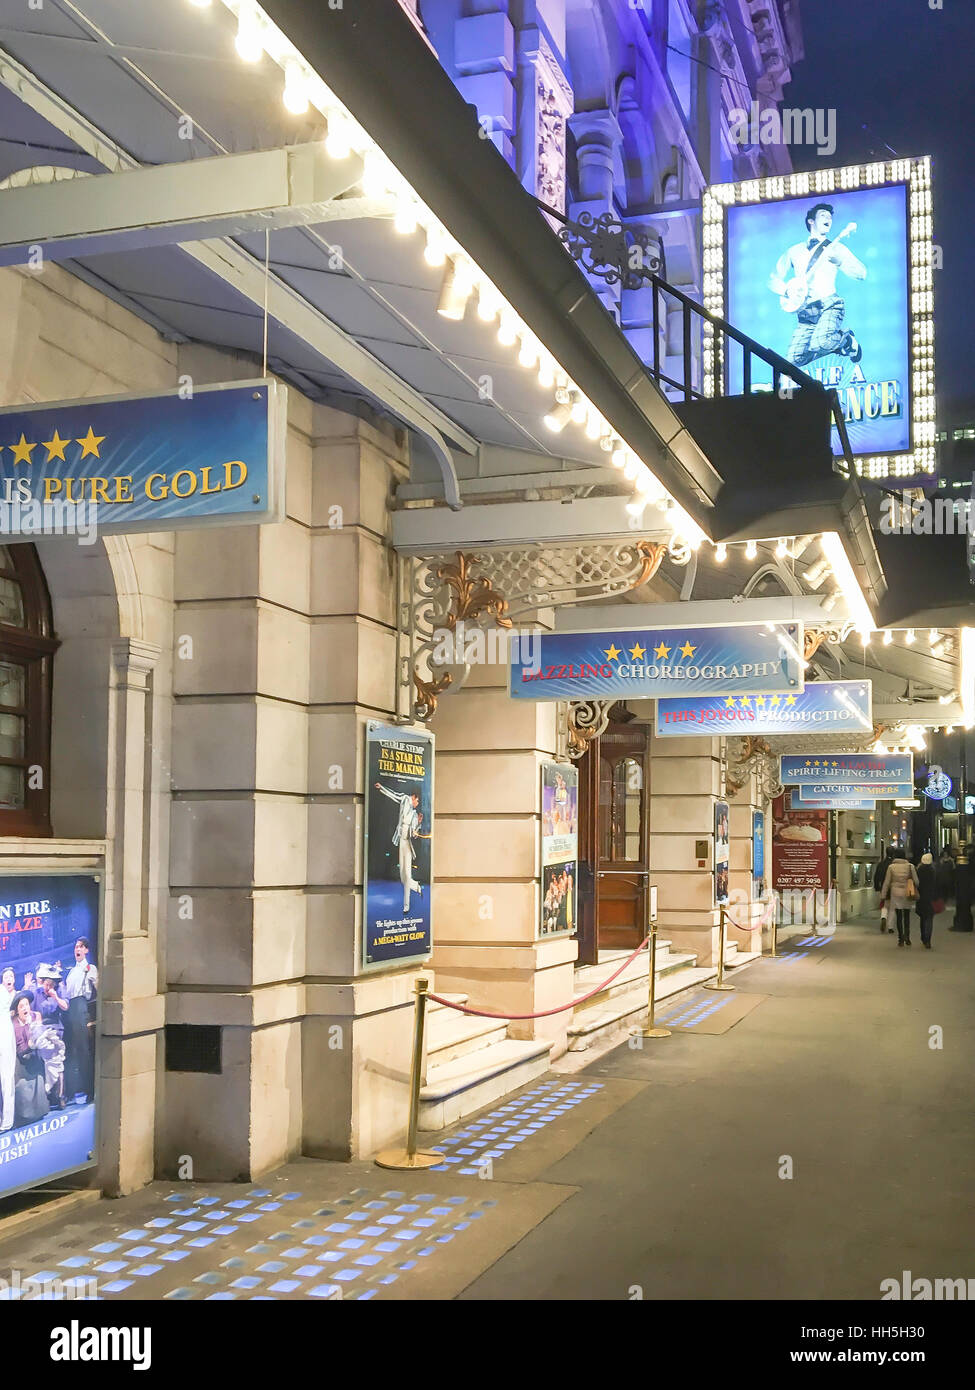 Half A Sixpence at Noel Coward Theatre, St Martin's Lane, West End, City of Westminster, Greater London, England, - Stock Image